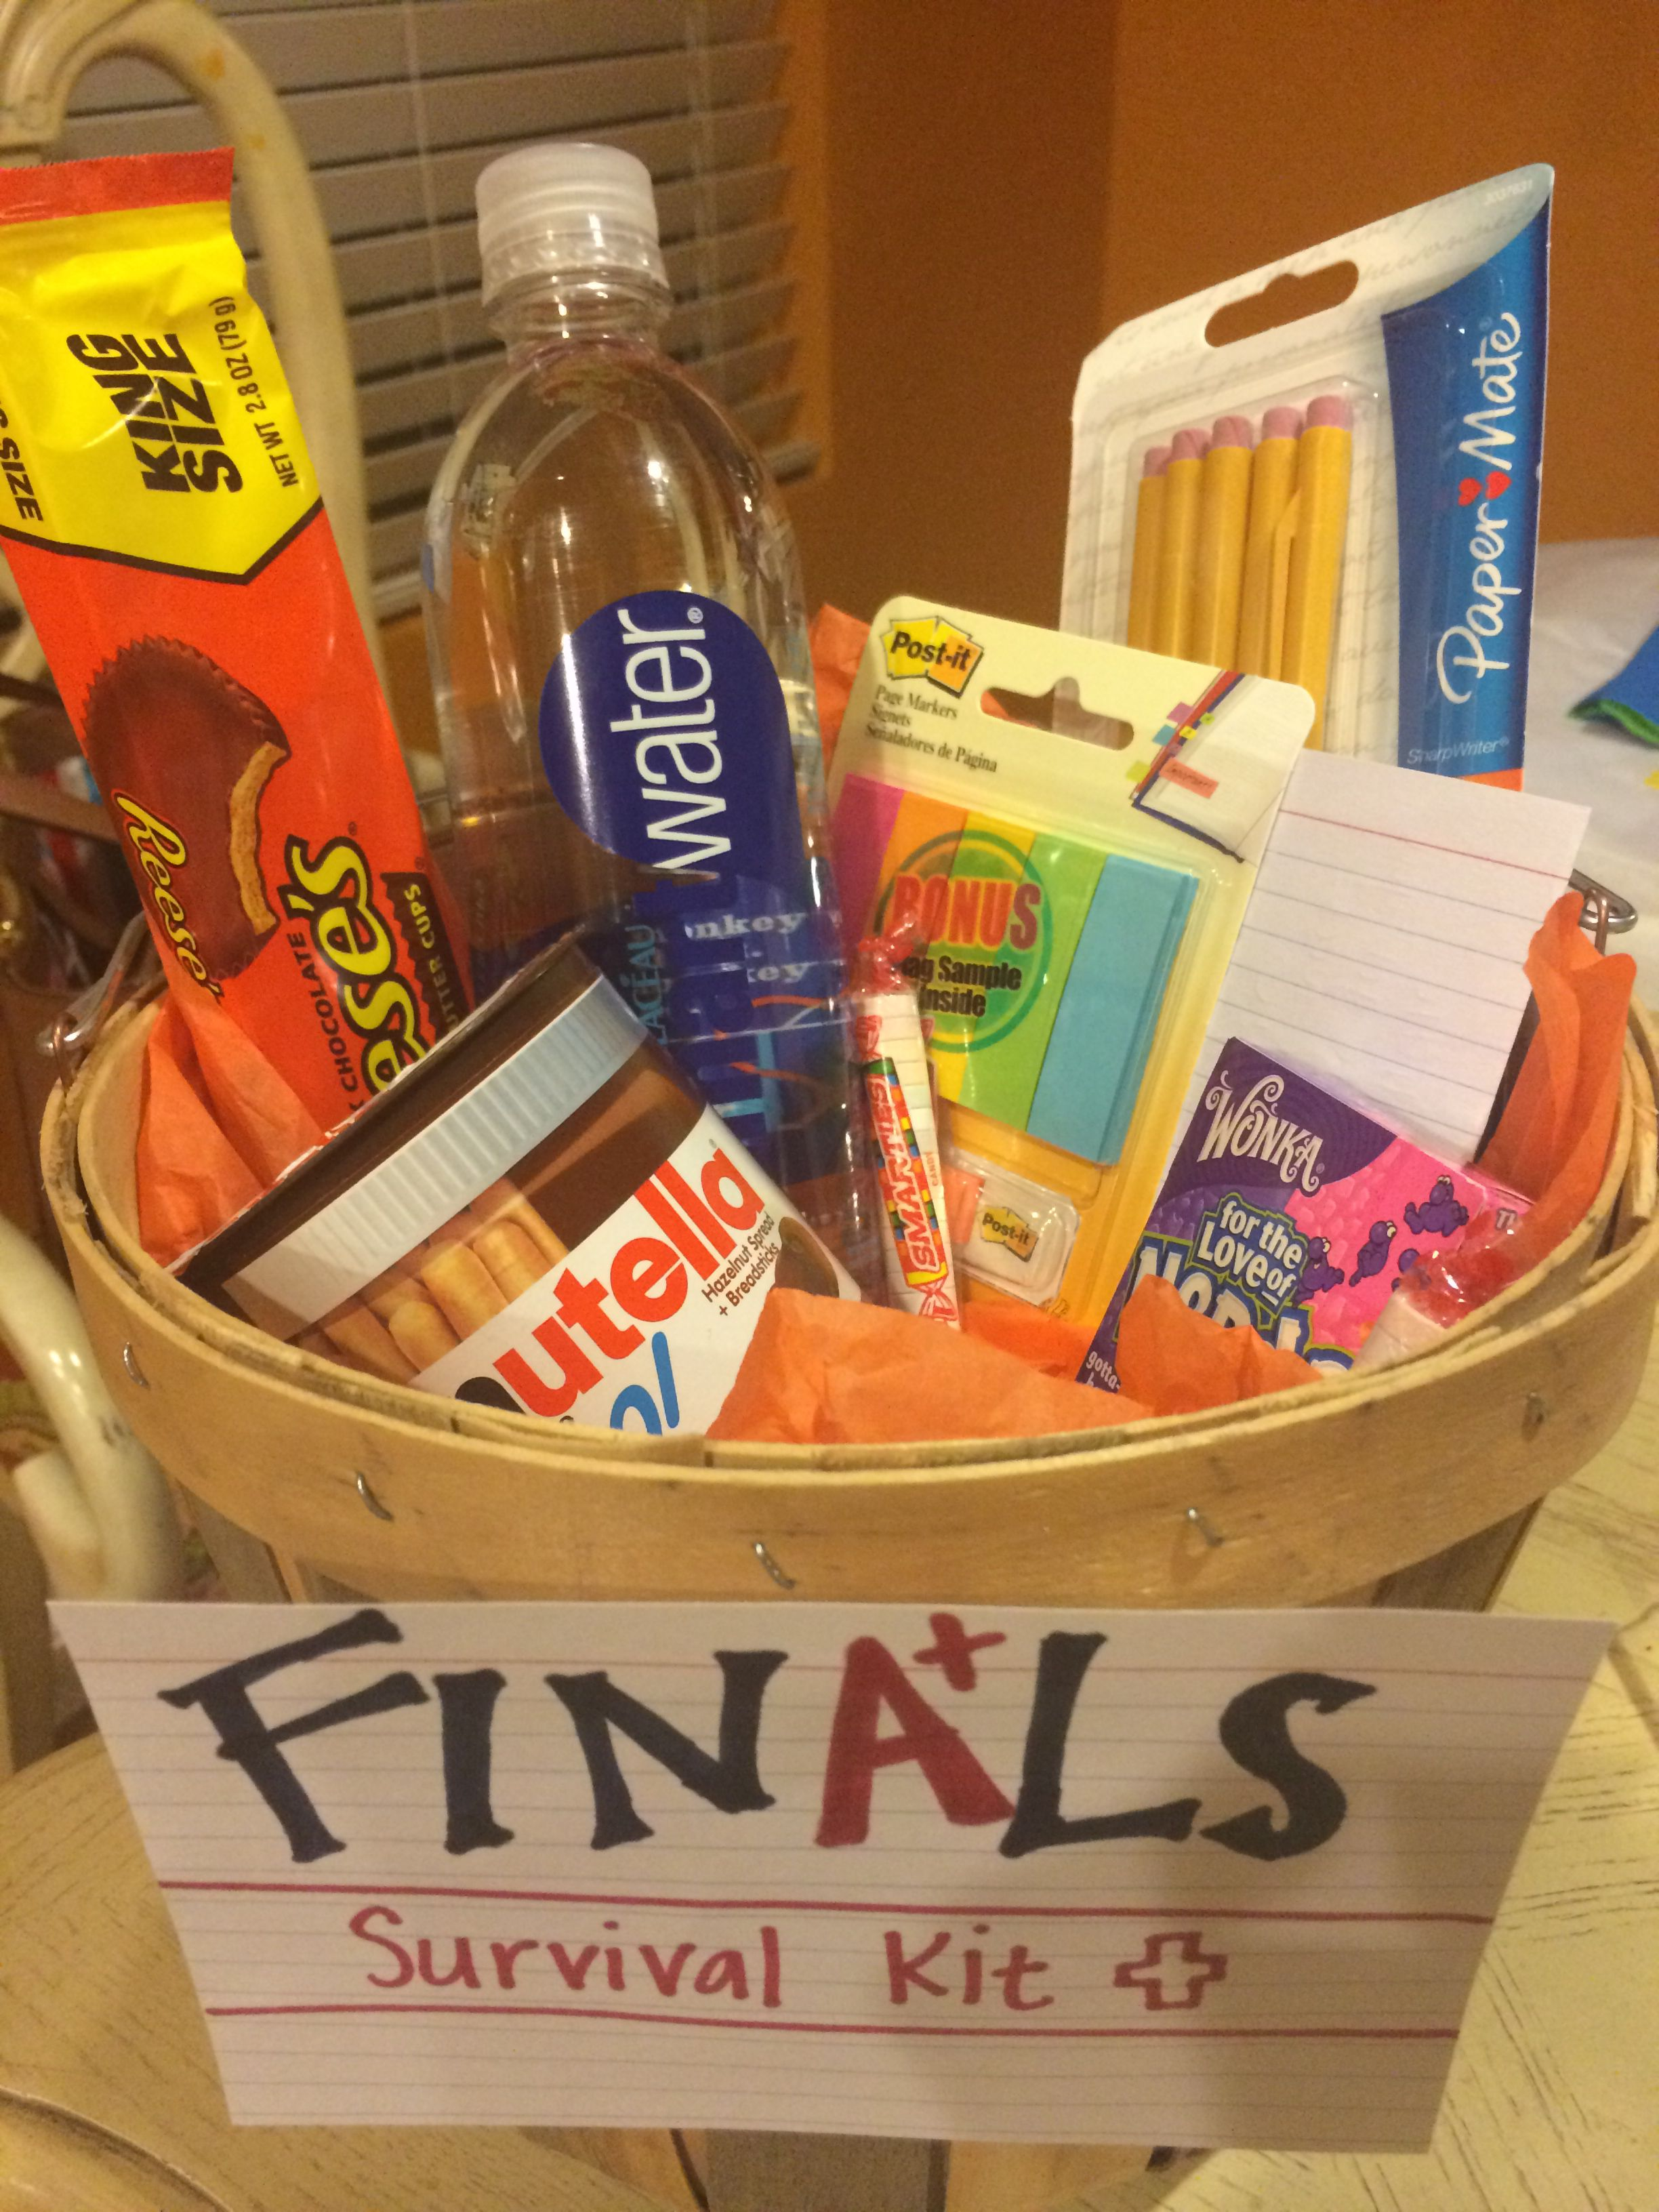 Pics photos funny college survival kit ideas - Finals Survival Kit